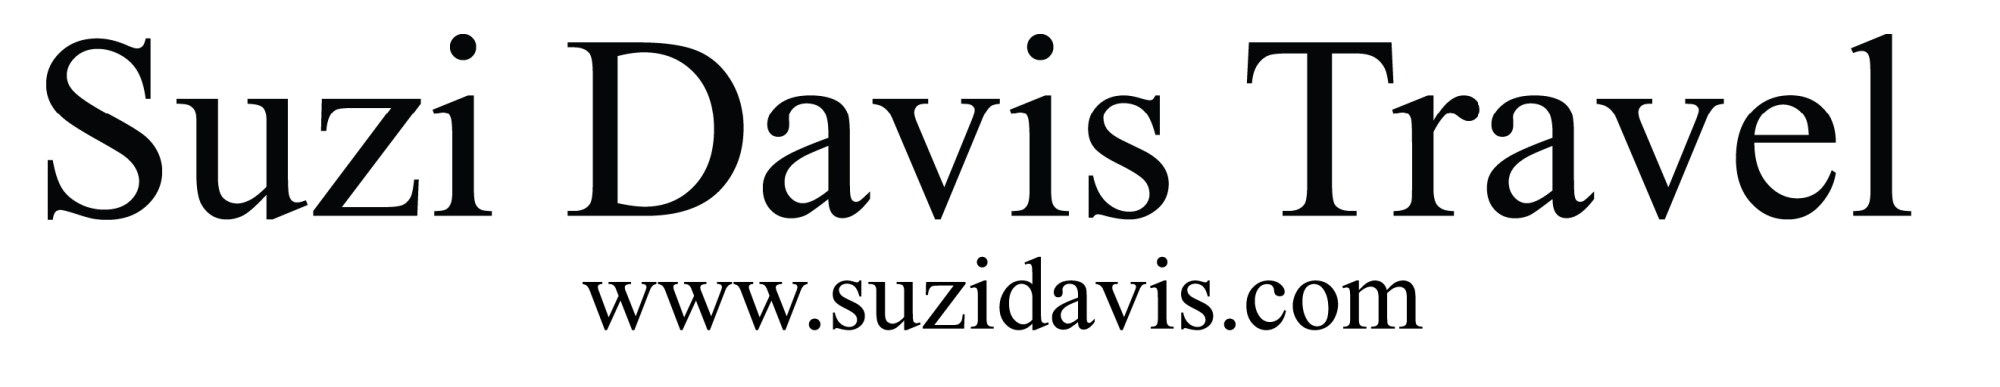 Suzi Davis Travel